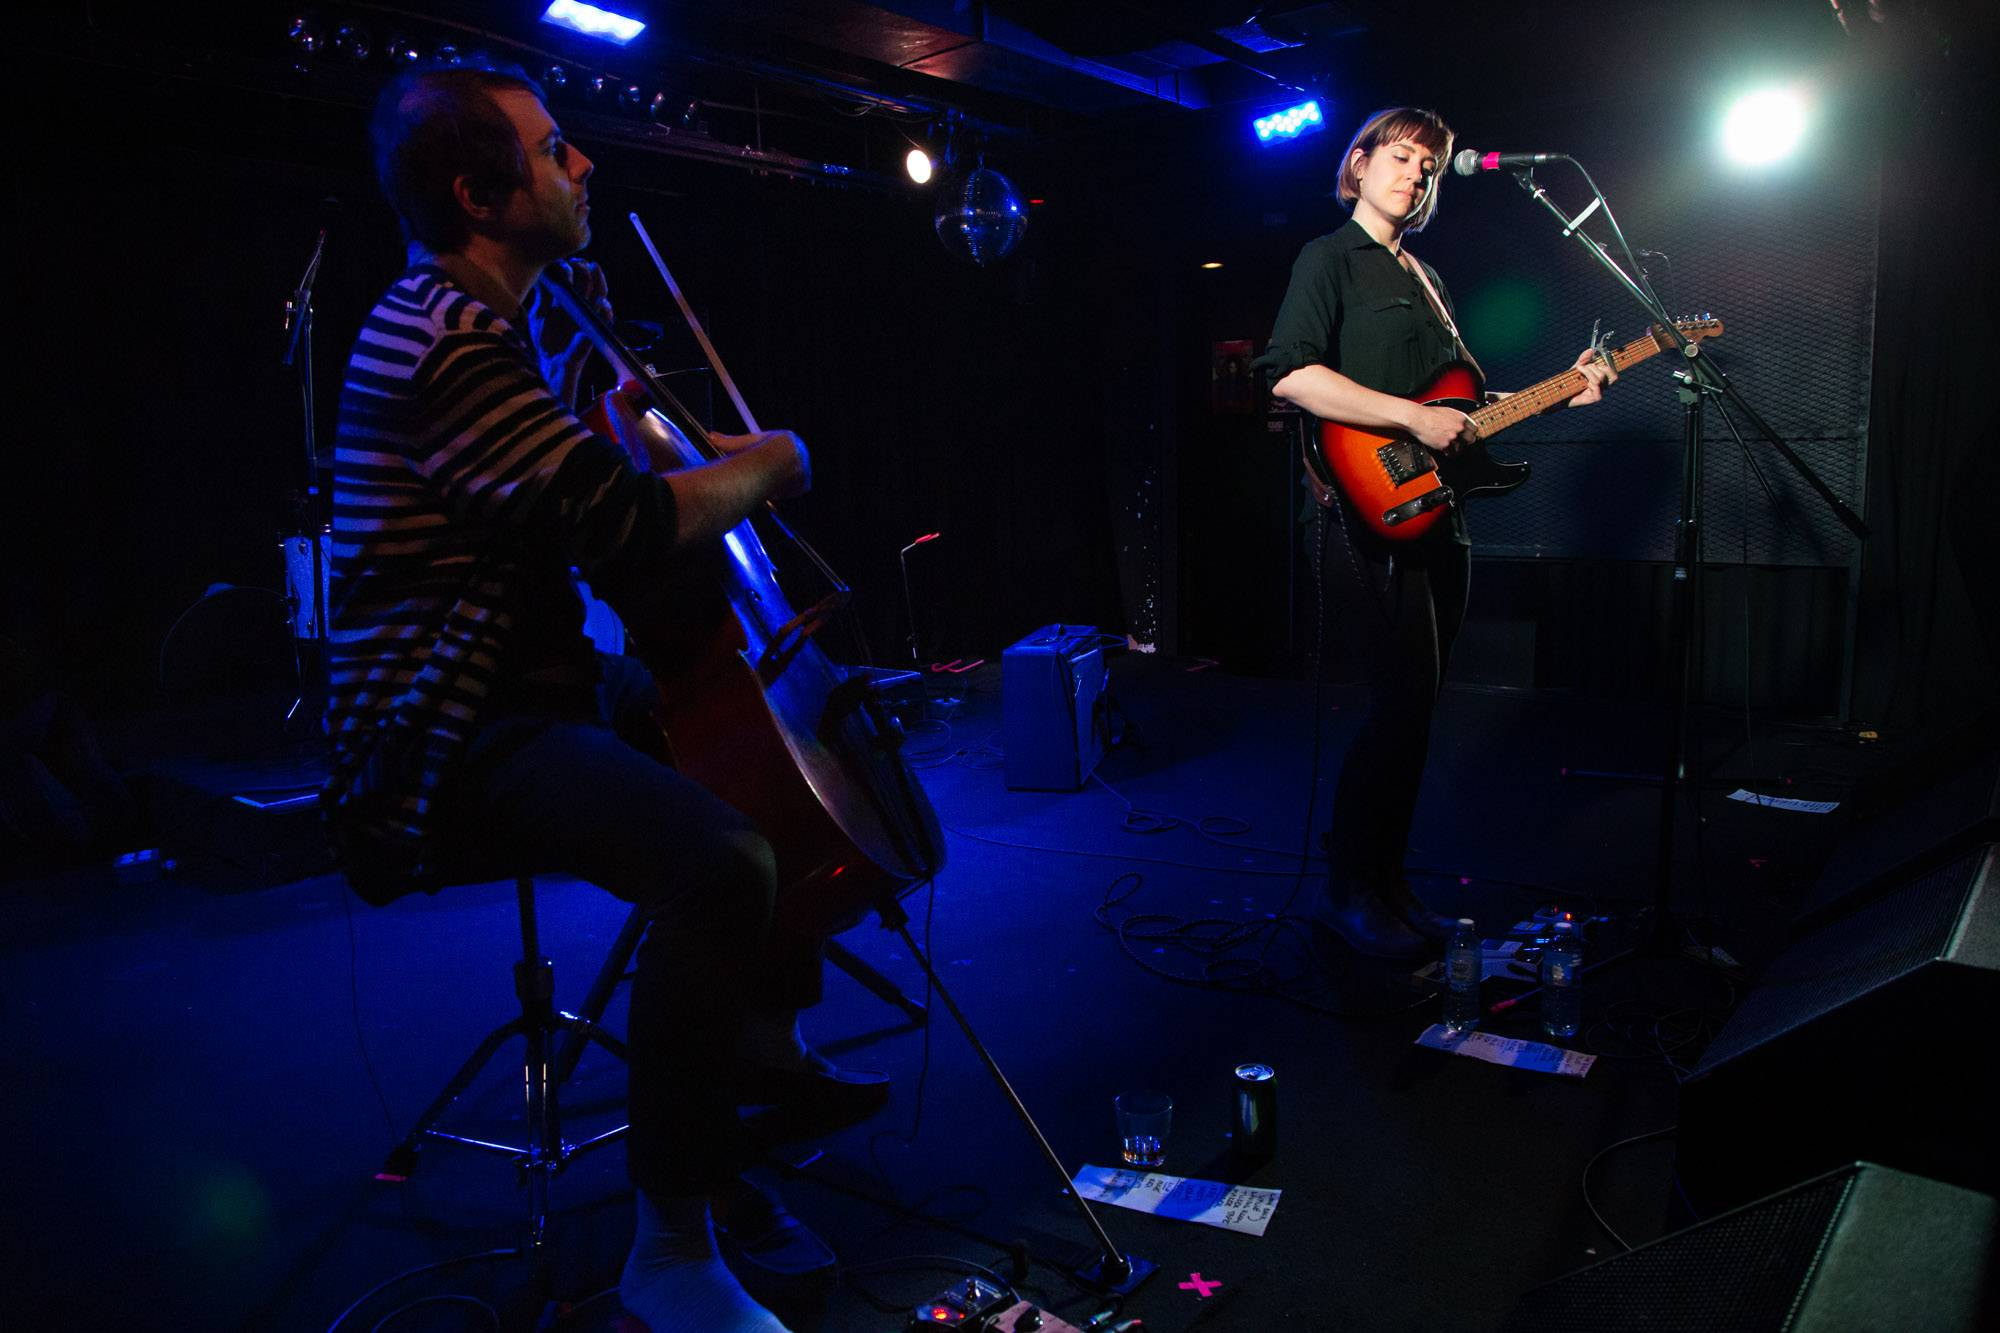 Laura Stevenson at the Biltmore Cabaret, Vancouver, May 14 2019. Kirk Chantraine photo.